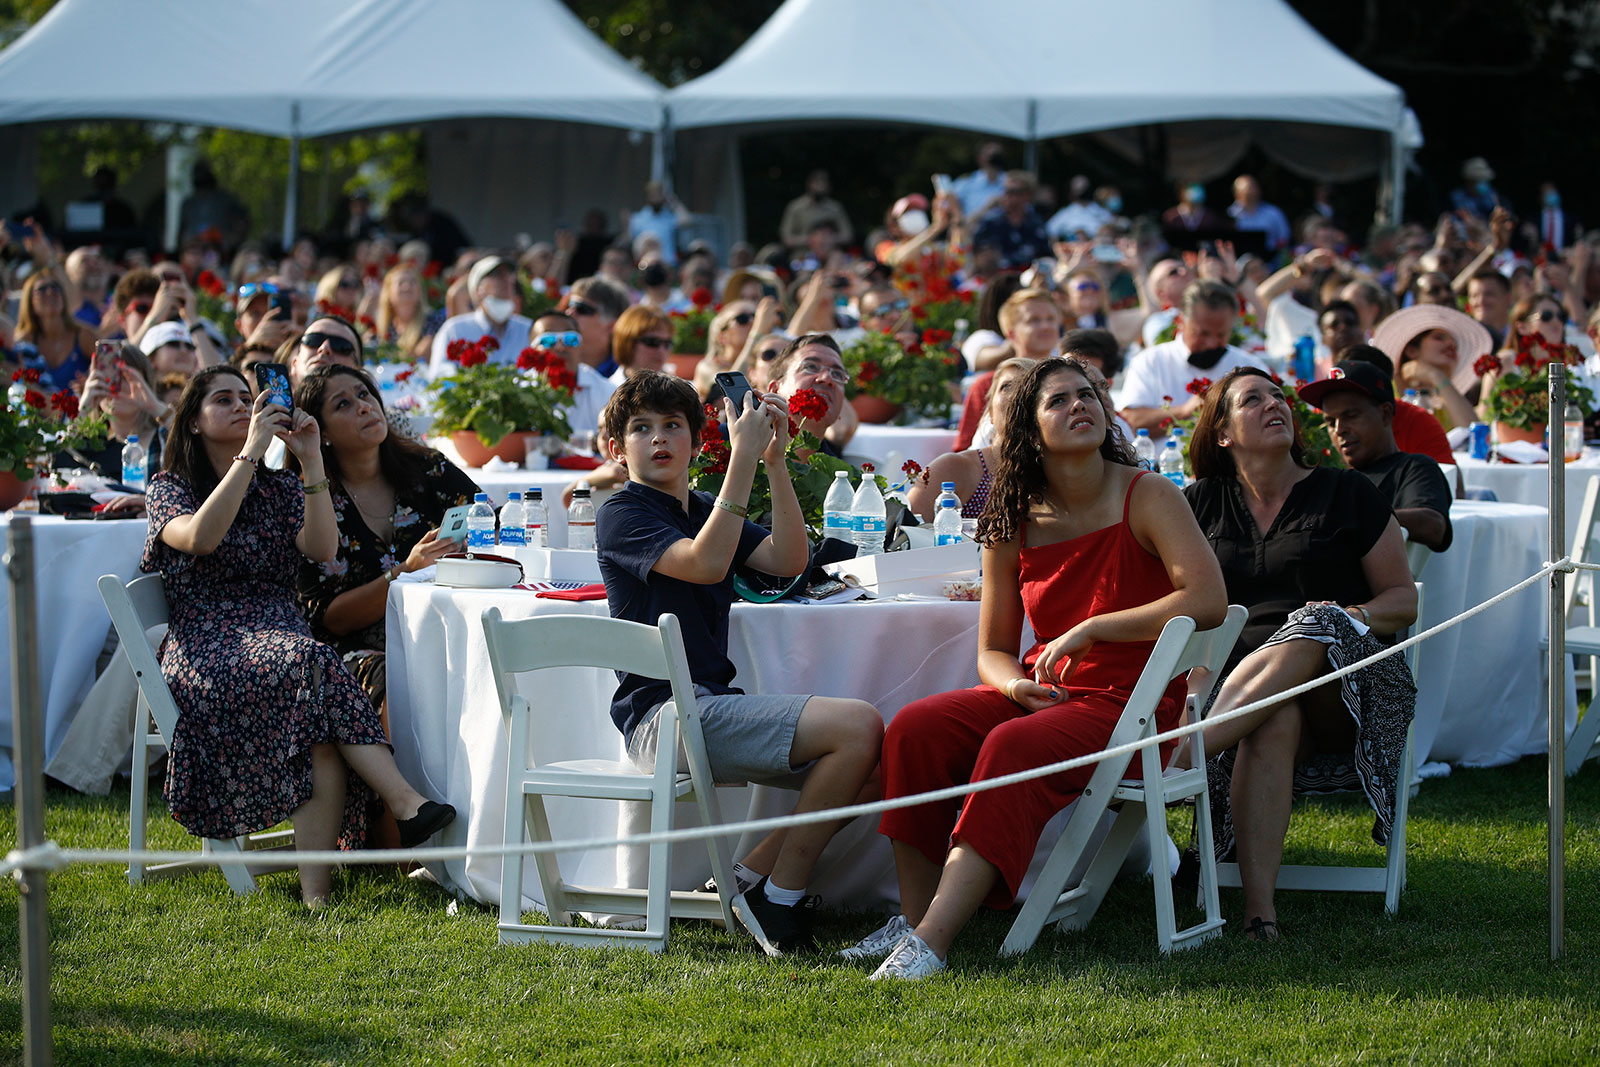 Guests attend the Salute to America event at the White House on Saturday.